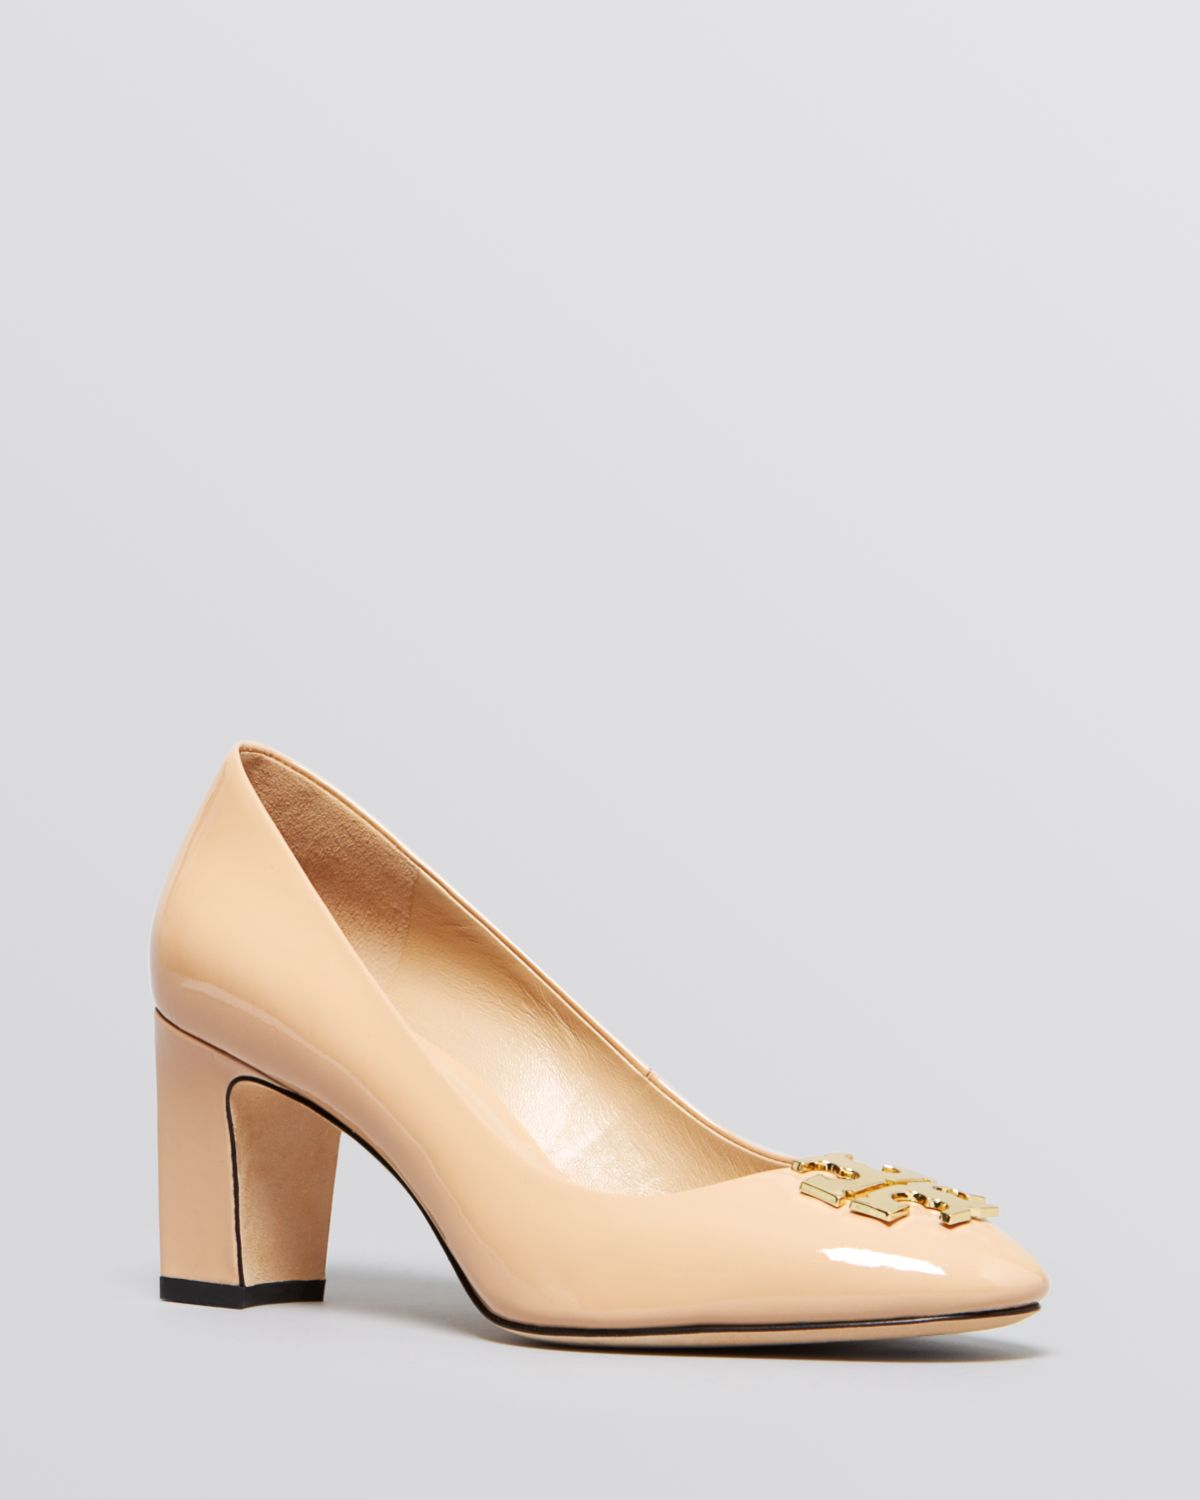 5f876587164 Lyst - Tory Burch Pumps - Raleigh Logo Mid Heel in Natural